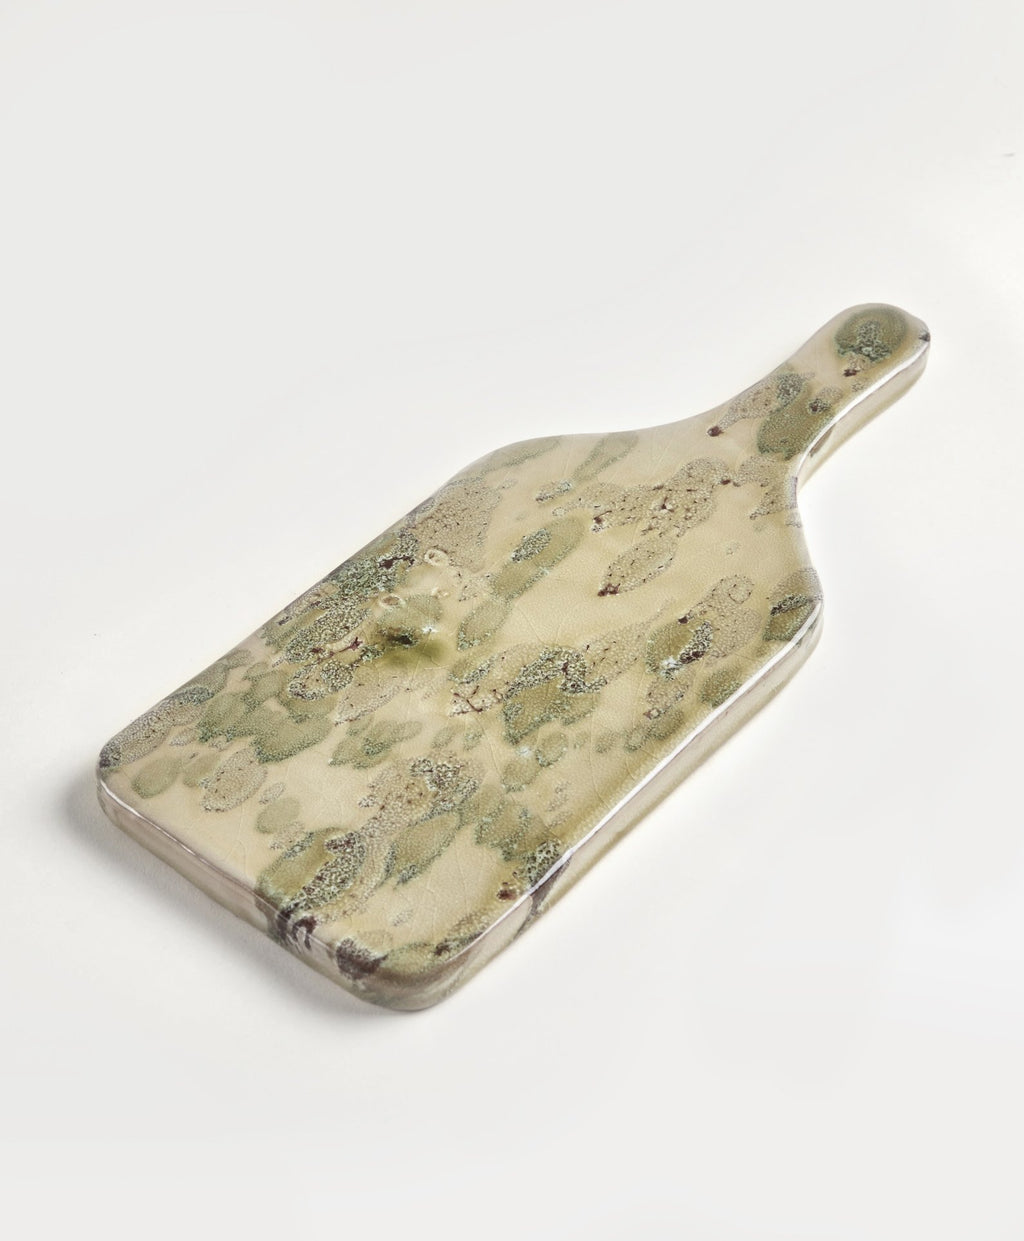 Bottle Serving Board - Il Buco Vita